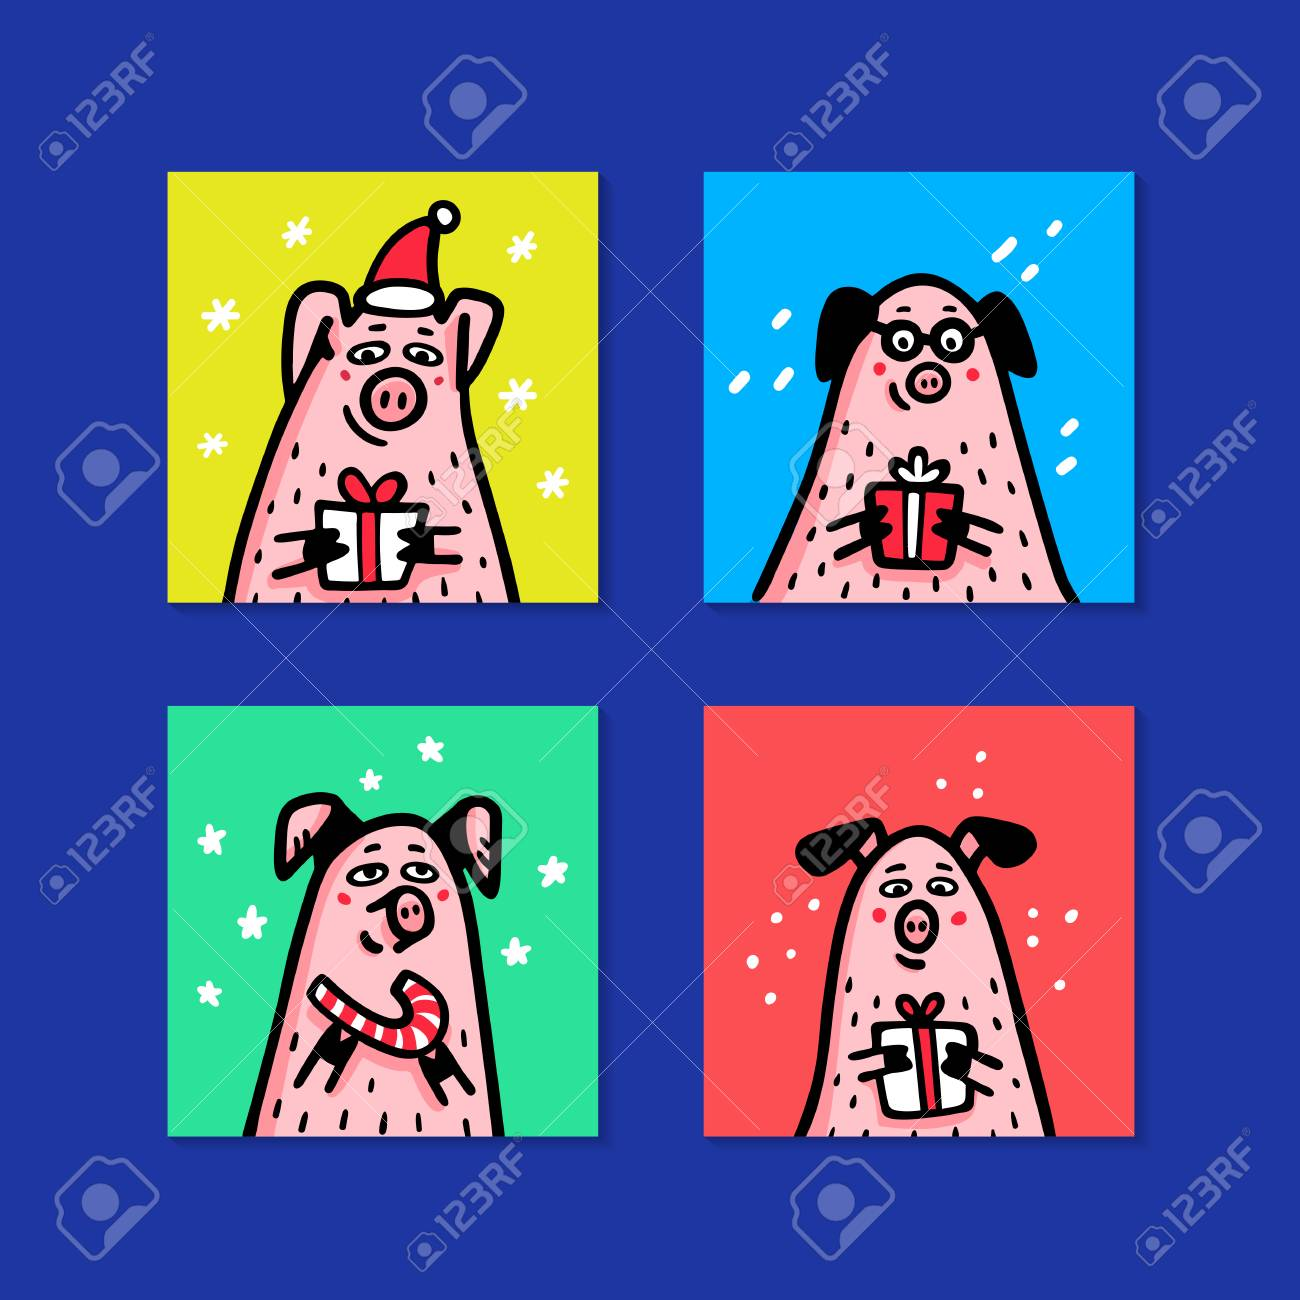 dfcd723c647c6 Illustration - Pig cards set. Funny pigs with candy canes